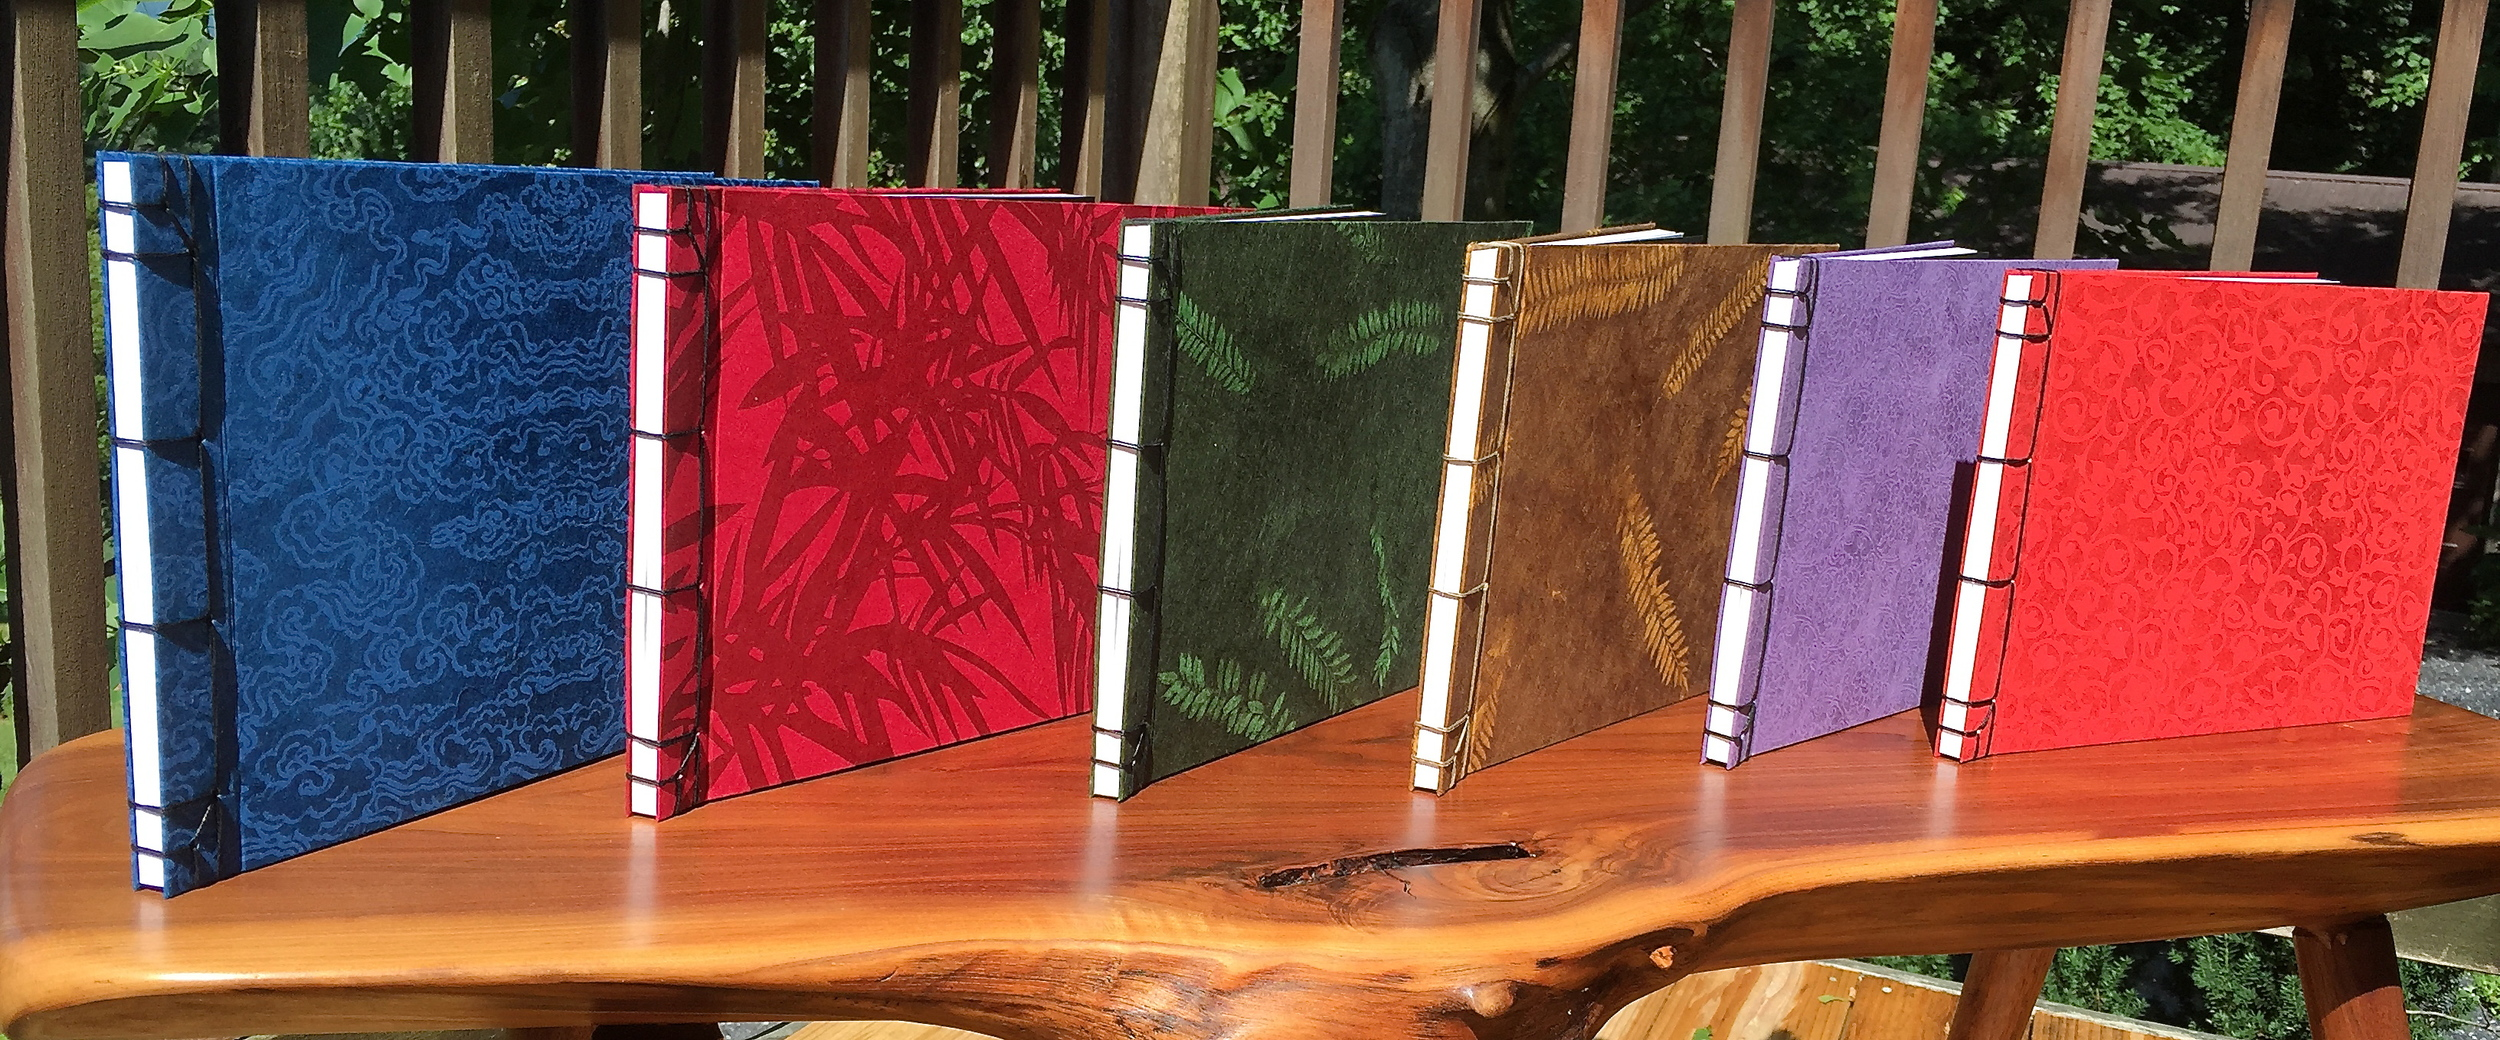 A new line of Guest Books from the Press, featuring handmade Nepalese papers.